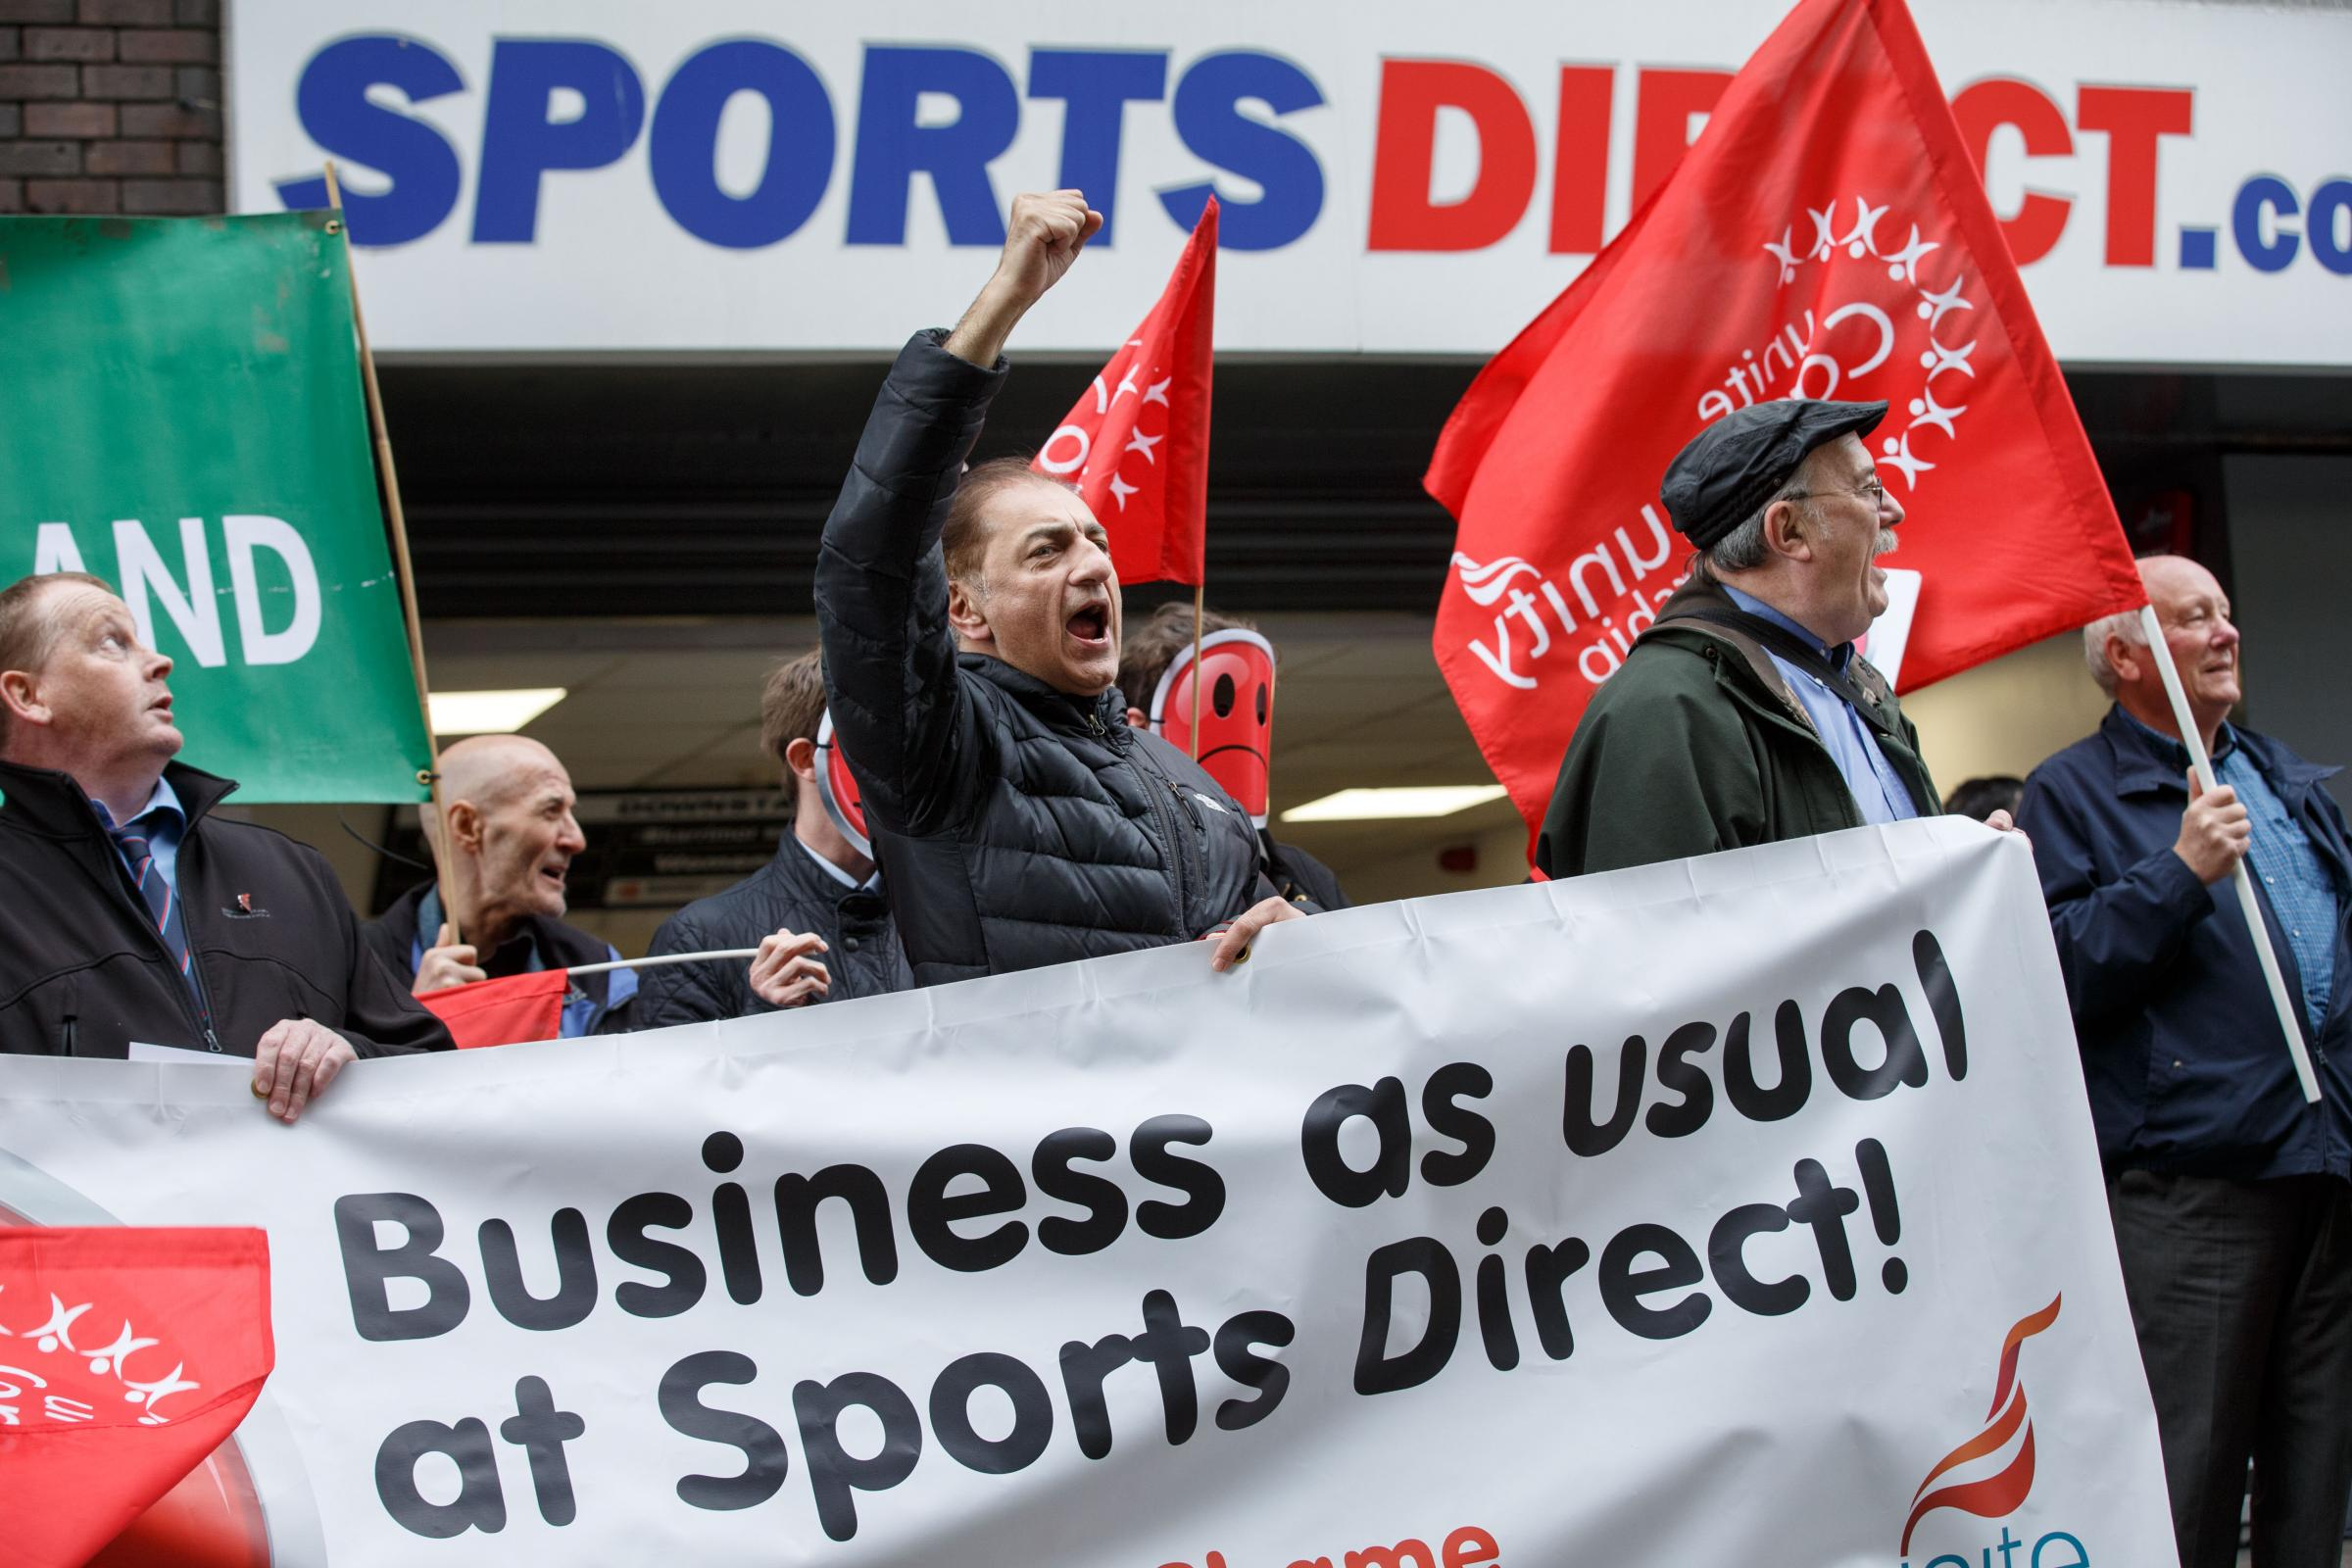 Demonstration outside Sports Direct